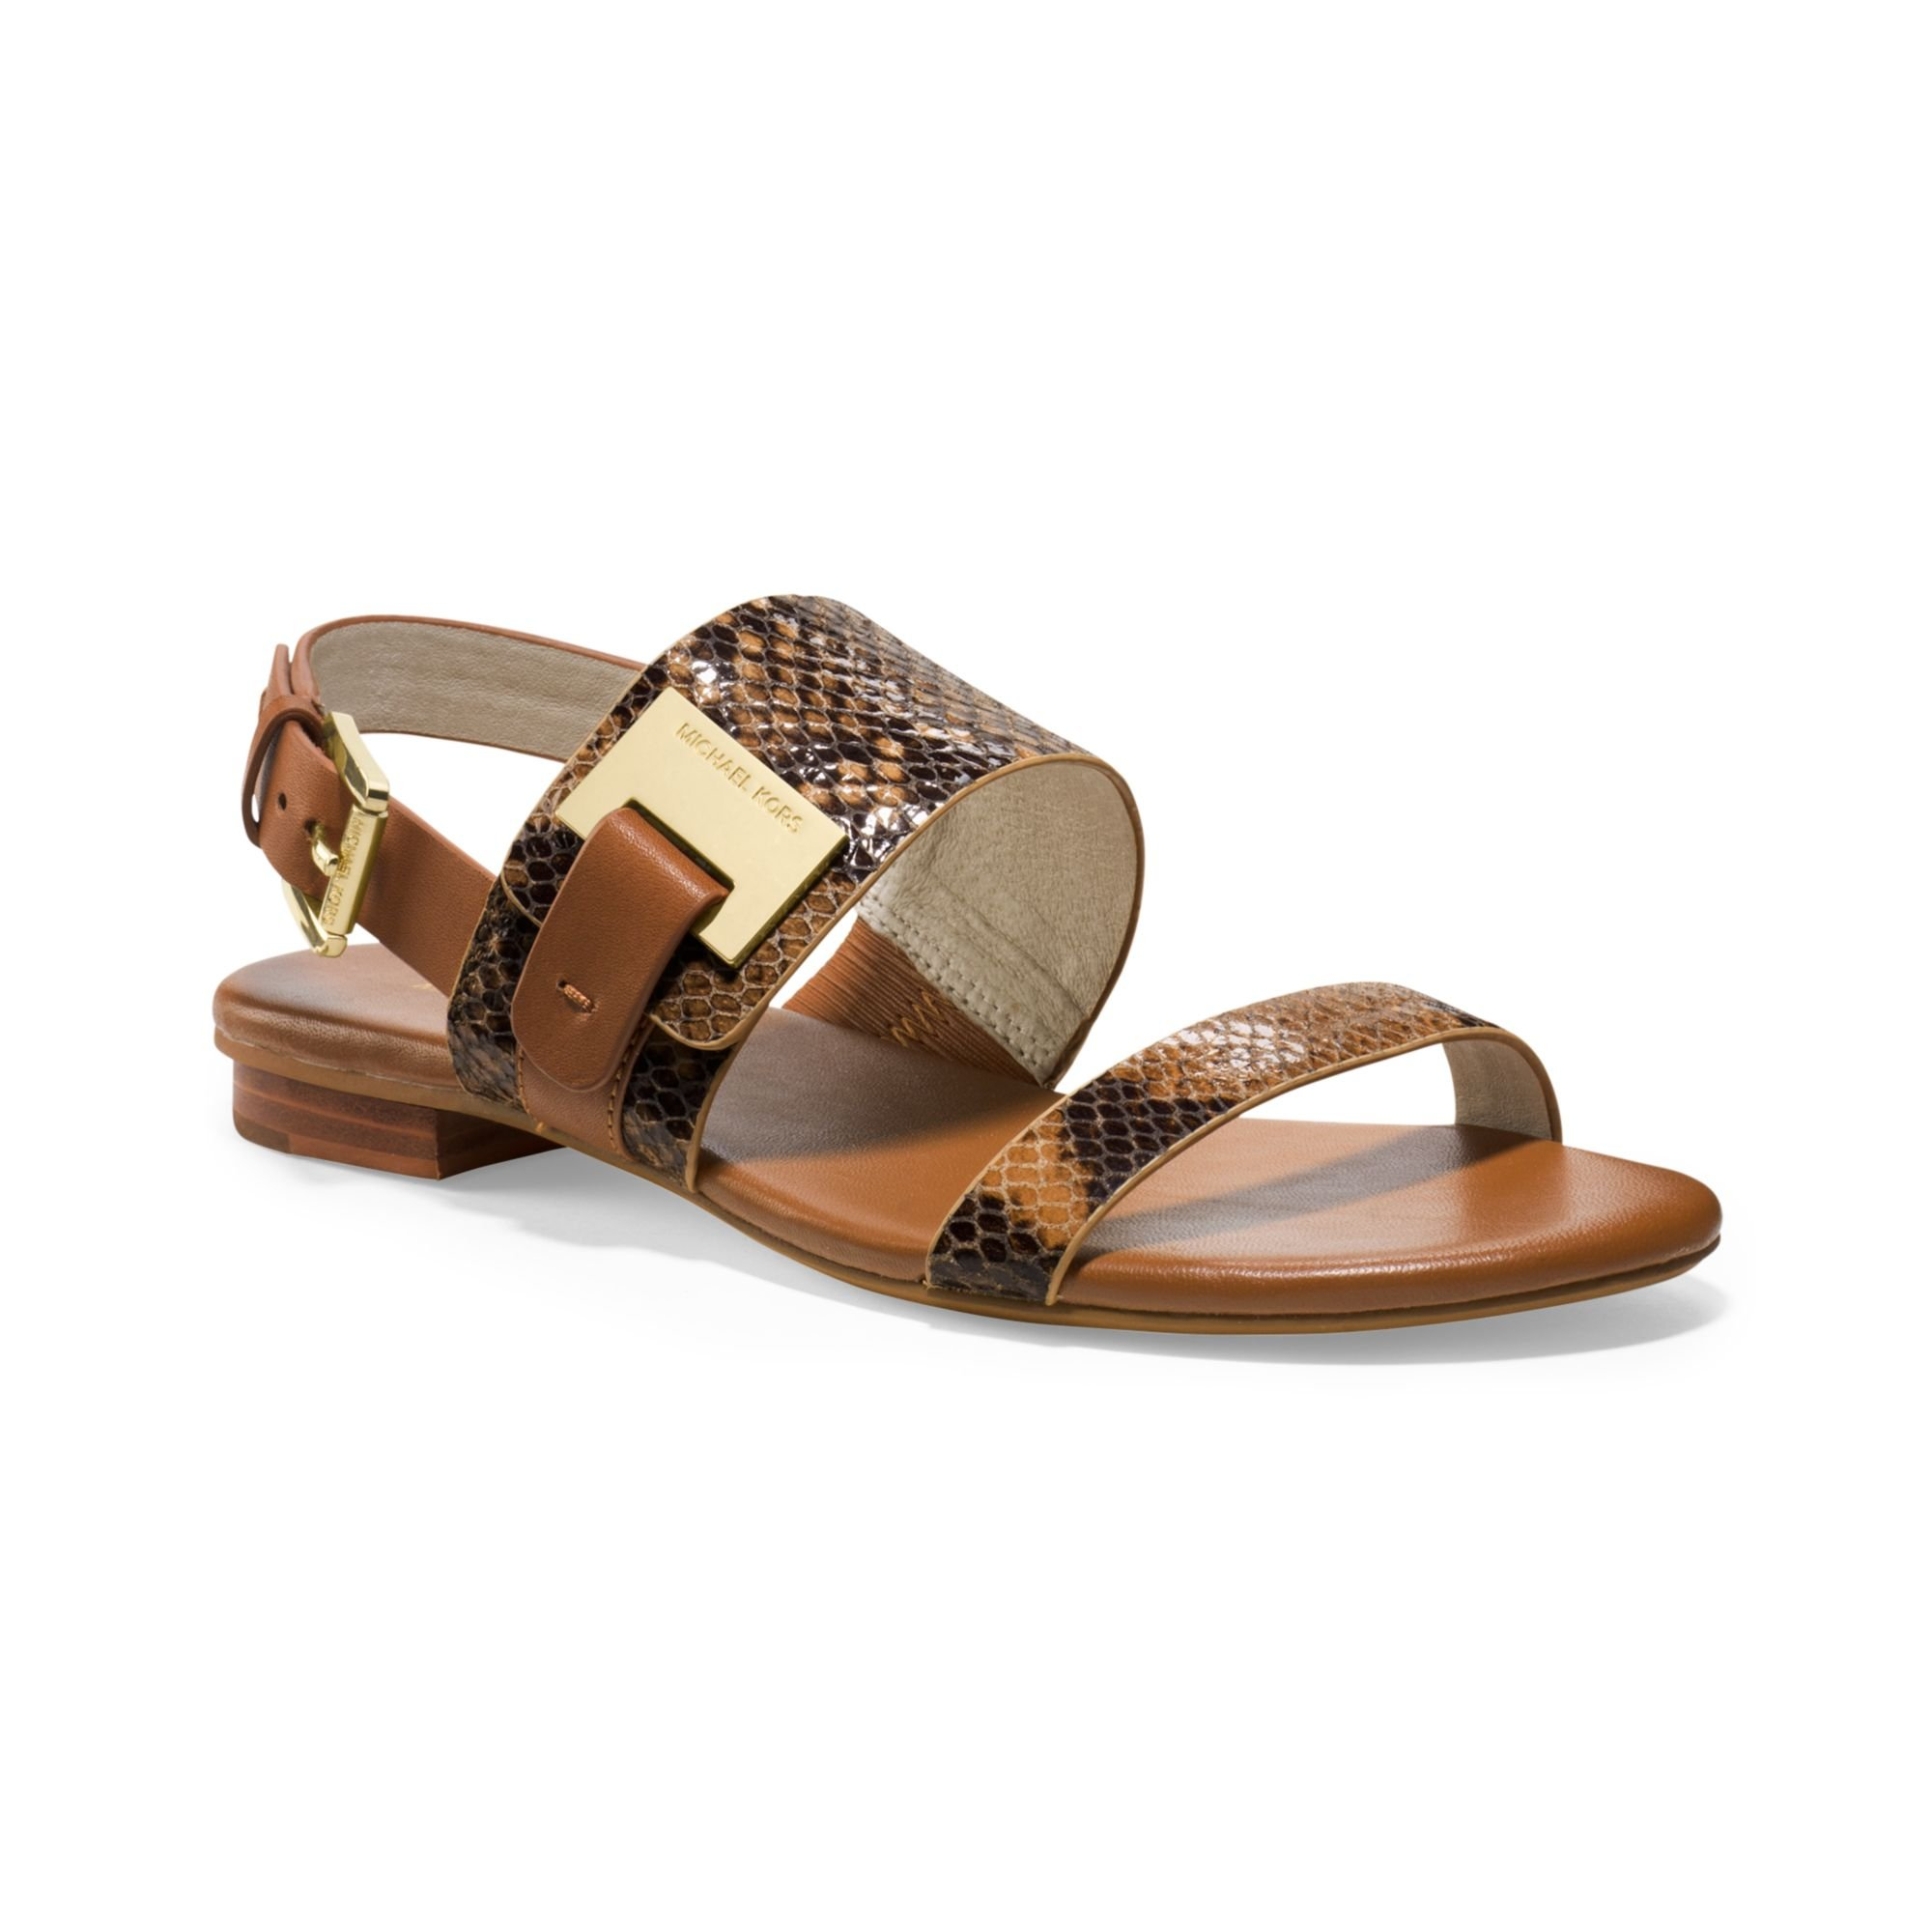 Lyst - Michael Kors Michael Guiliana Flat Sandals in Brown